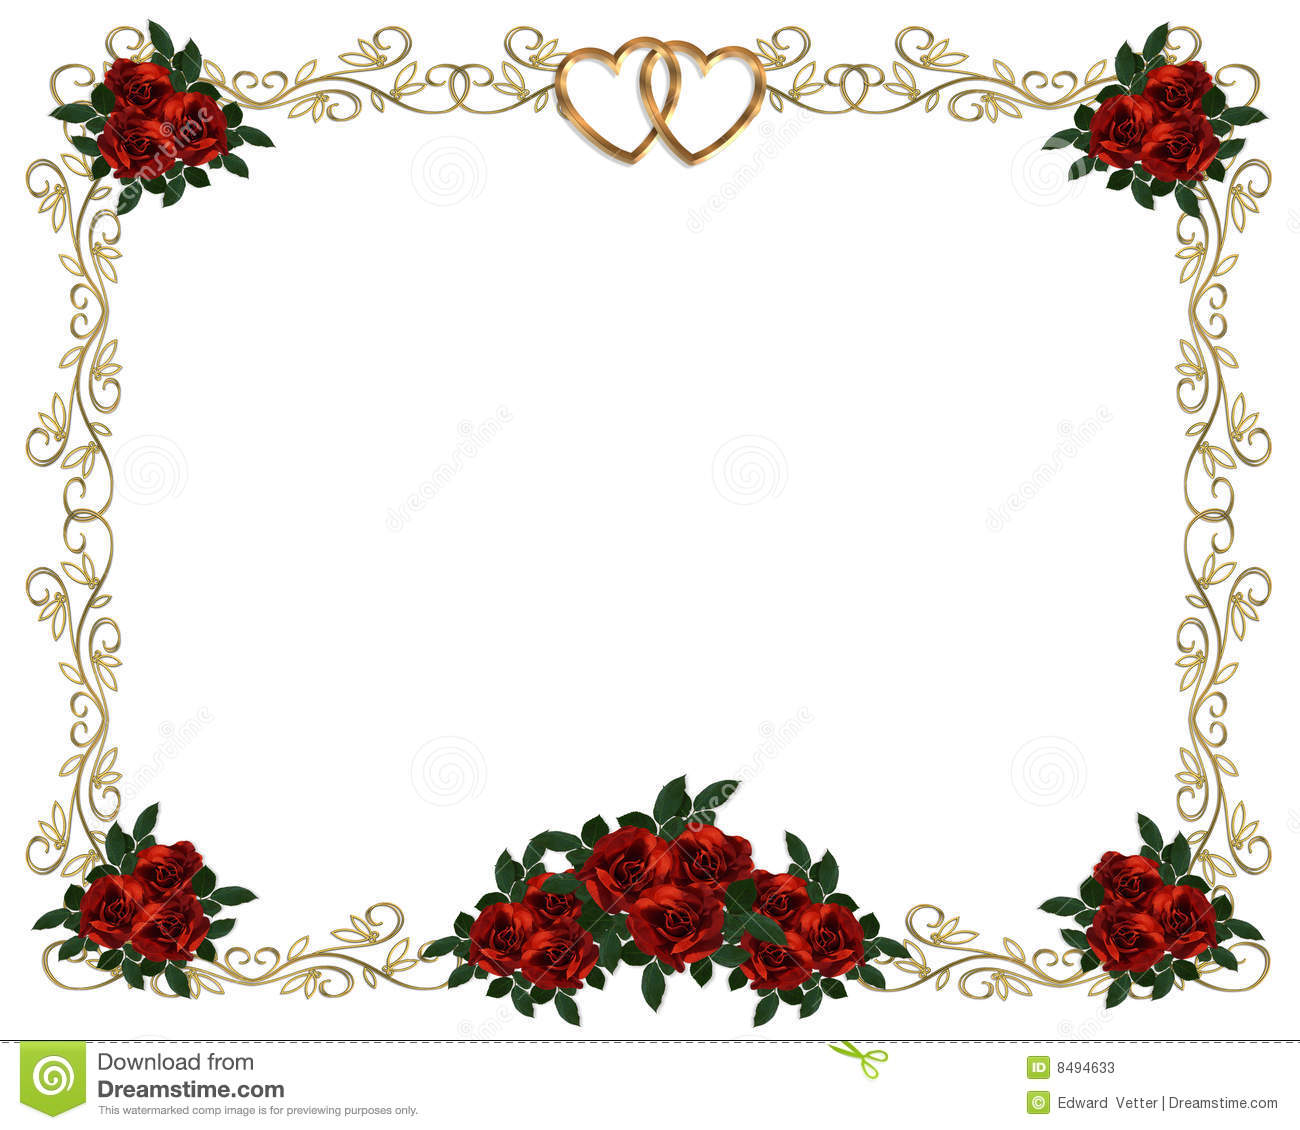 Red roses border wedding invitation stock illustration download comp stopboris Image collections